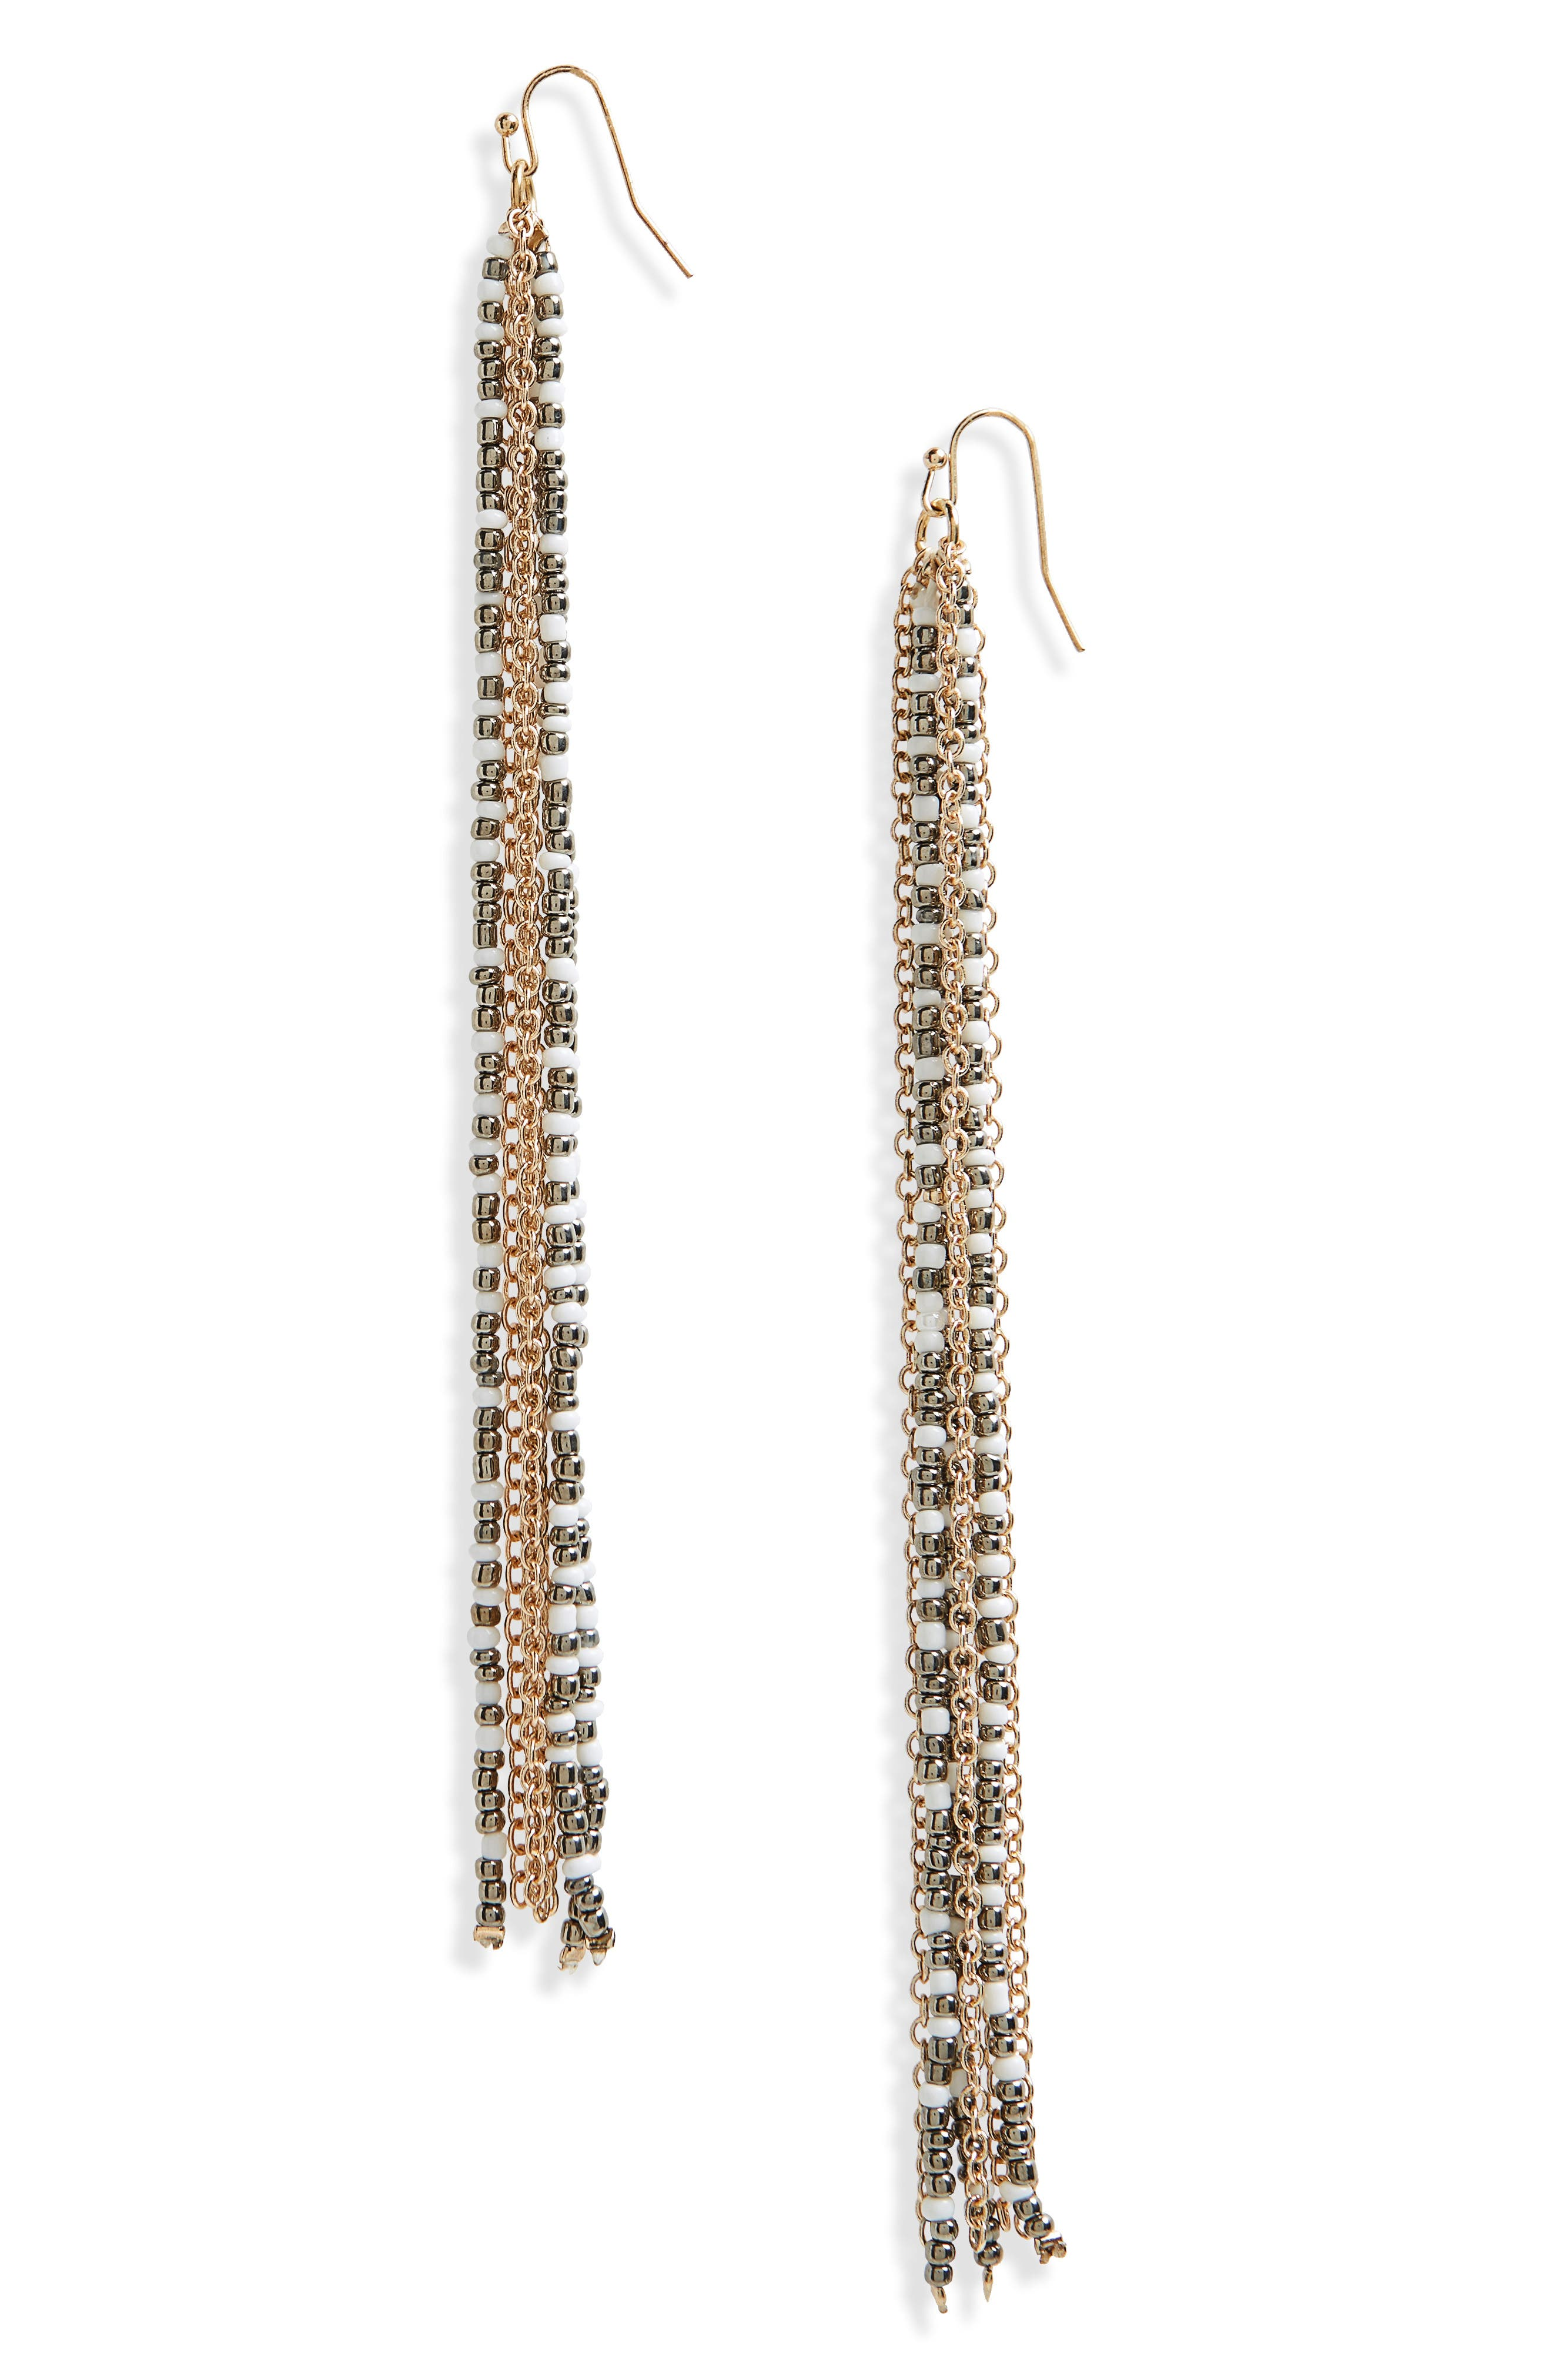 Linear Seed Bead Earrings,                         Main,                         color, White